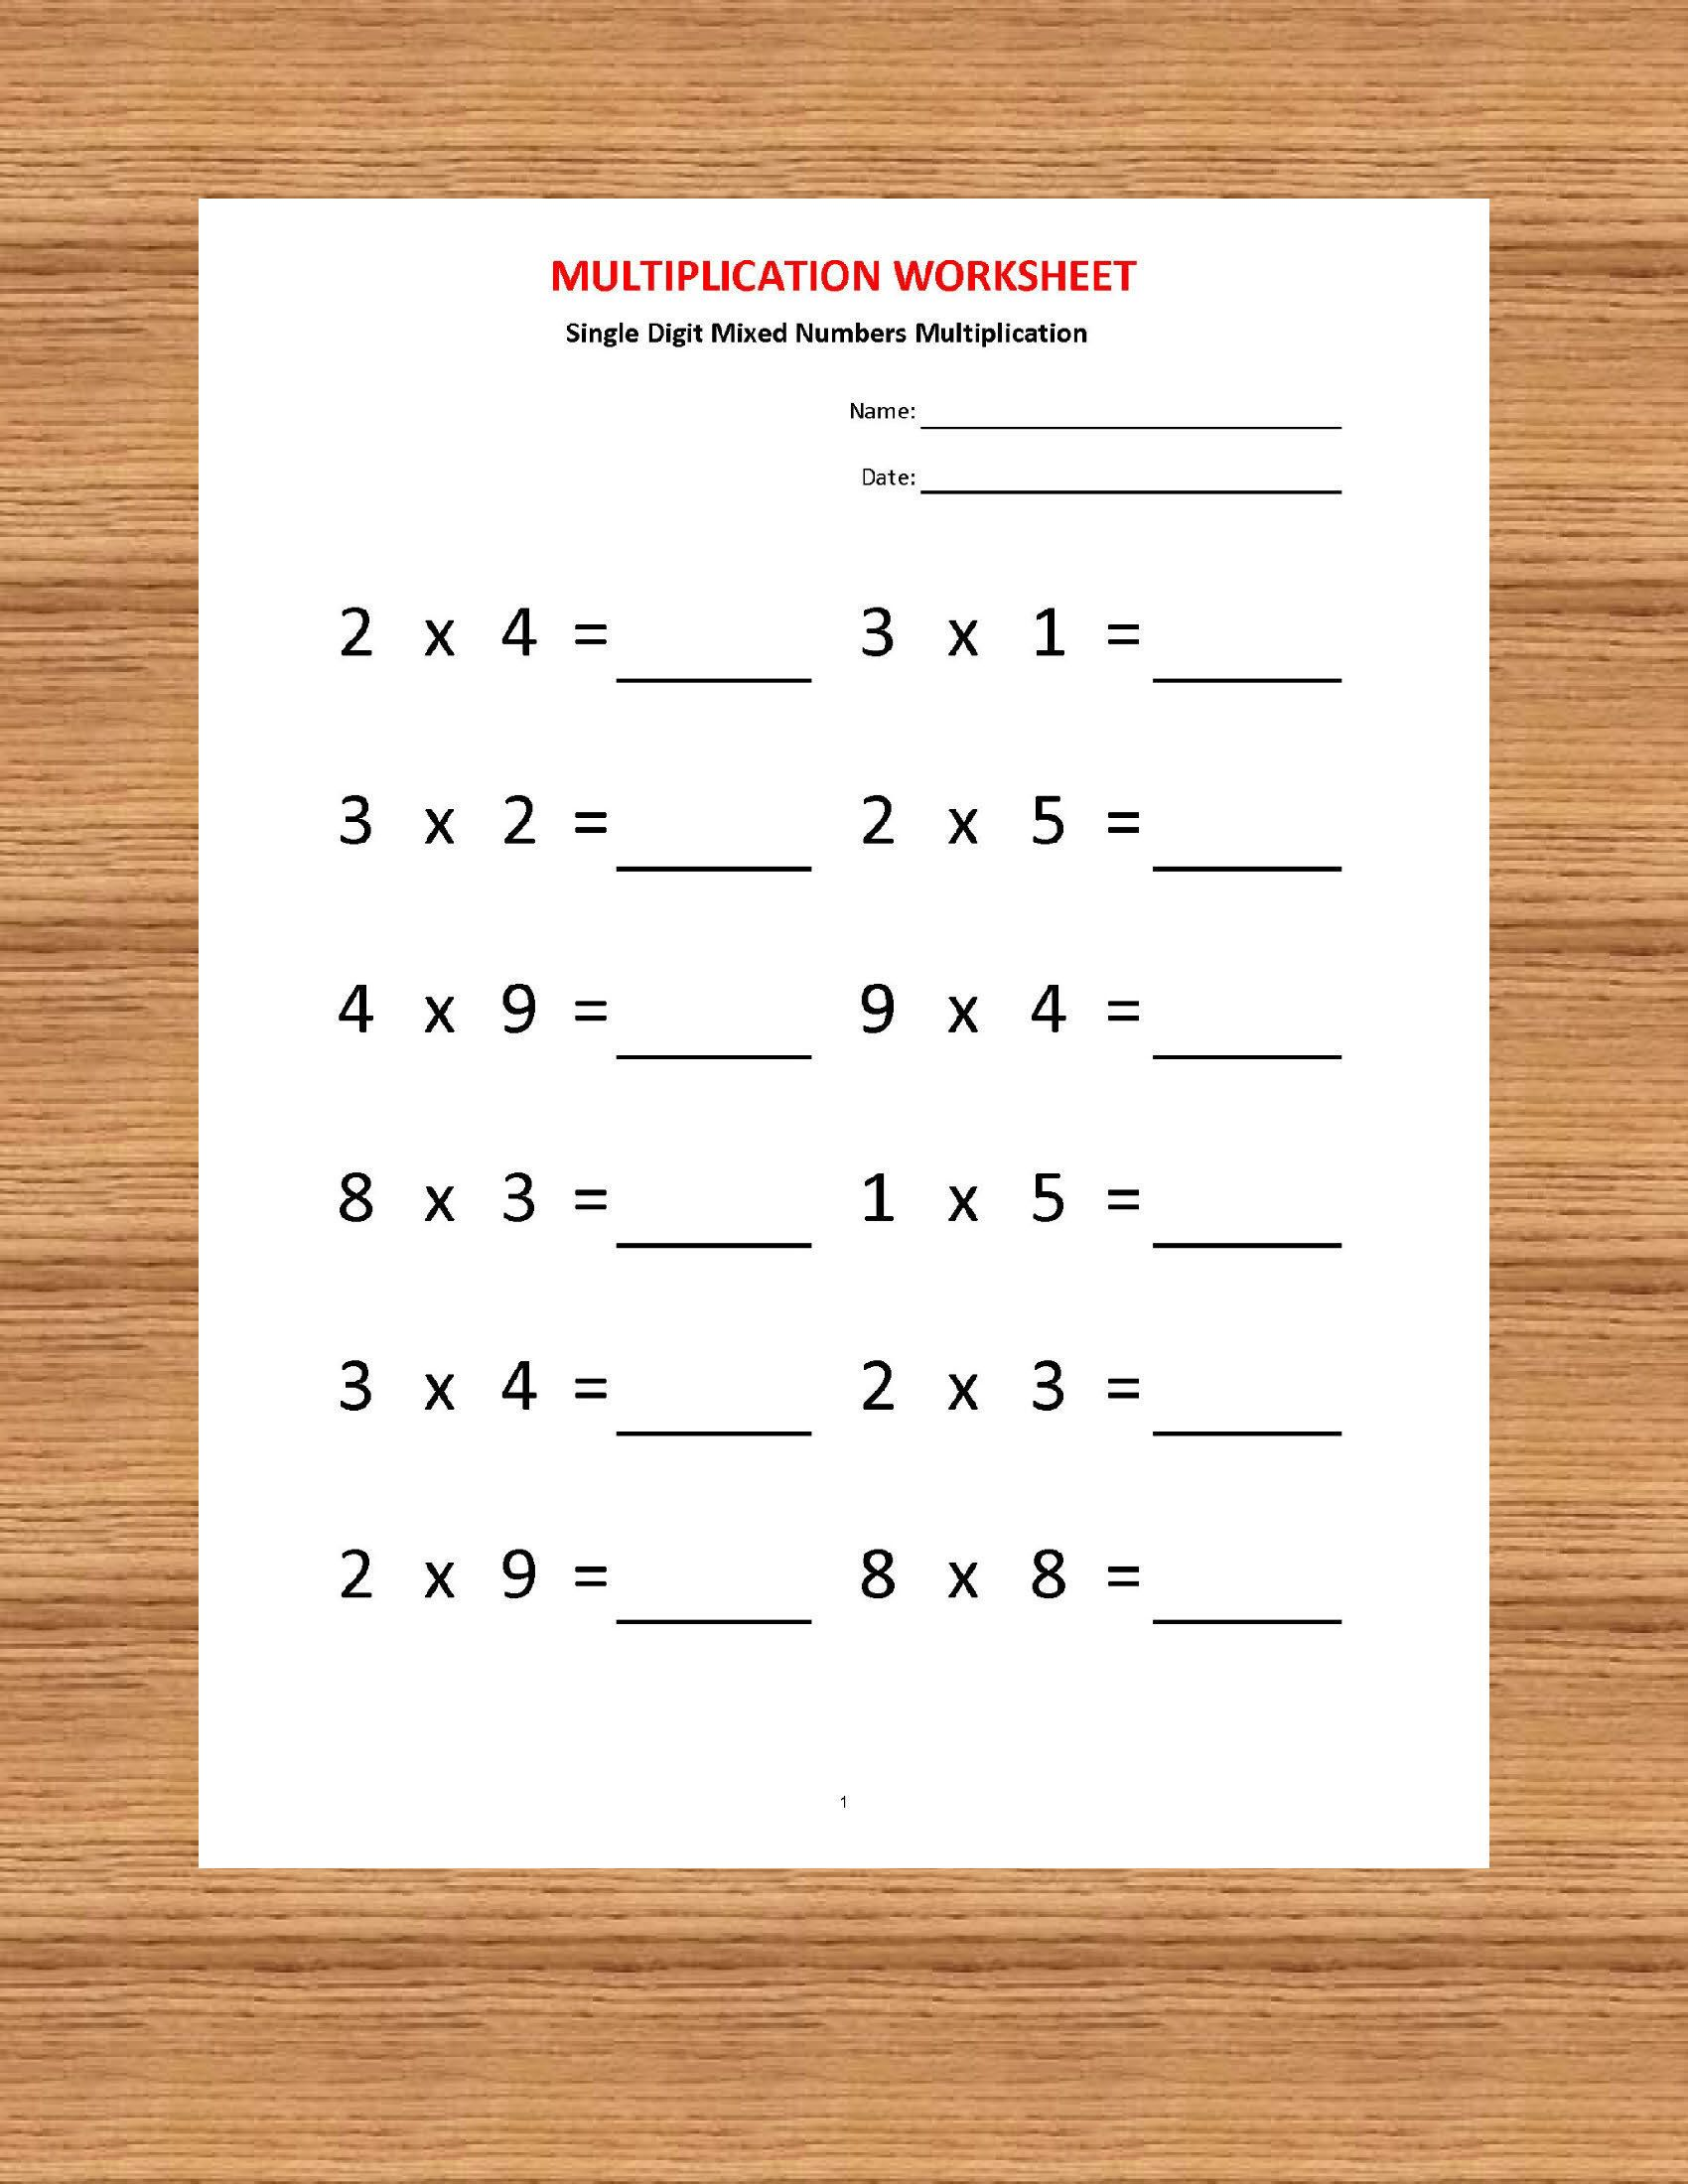 Multiplication Worksheets Printable Worksheets